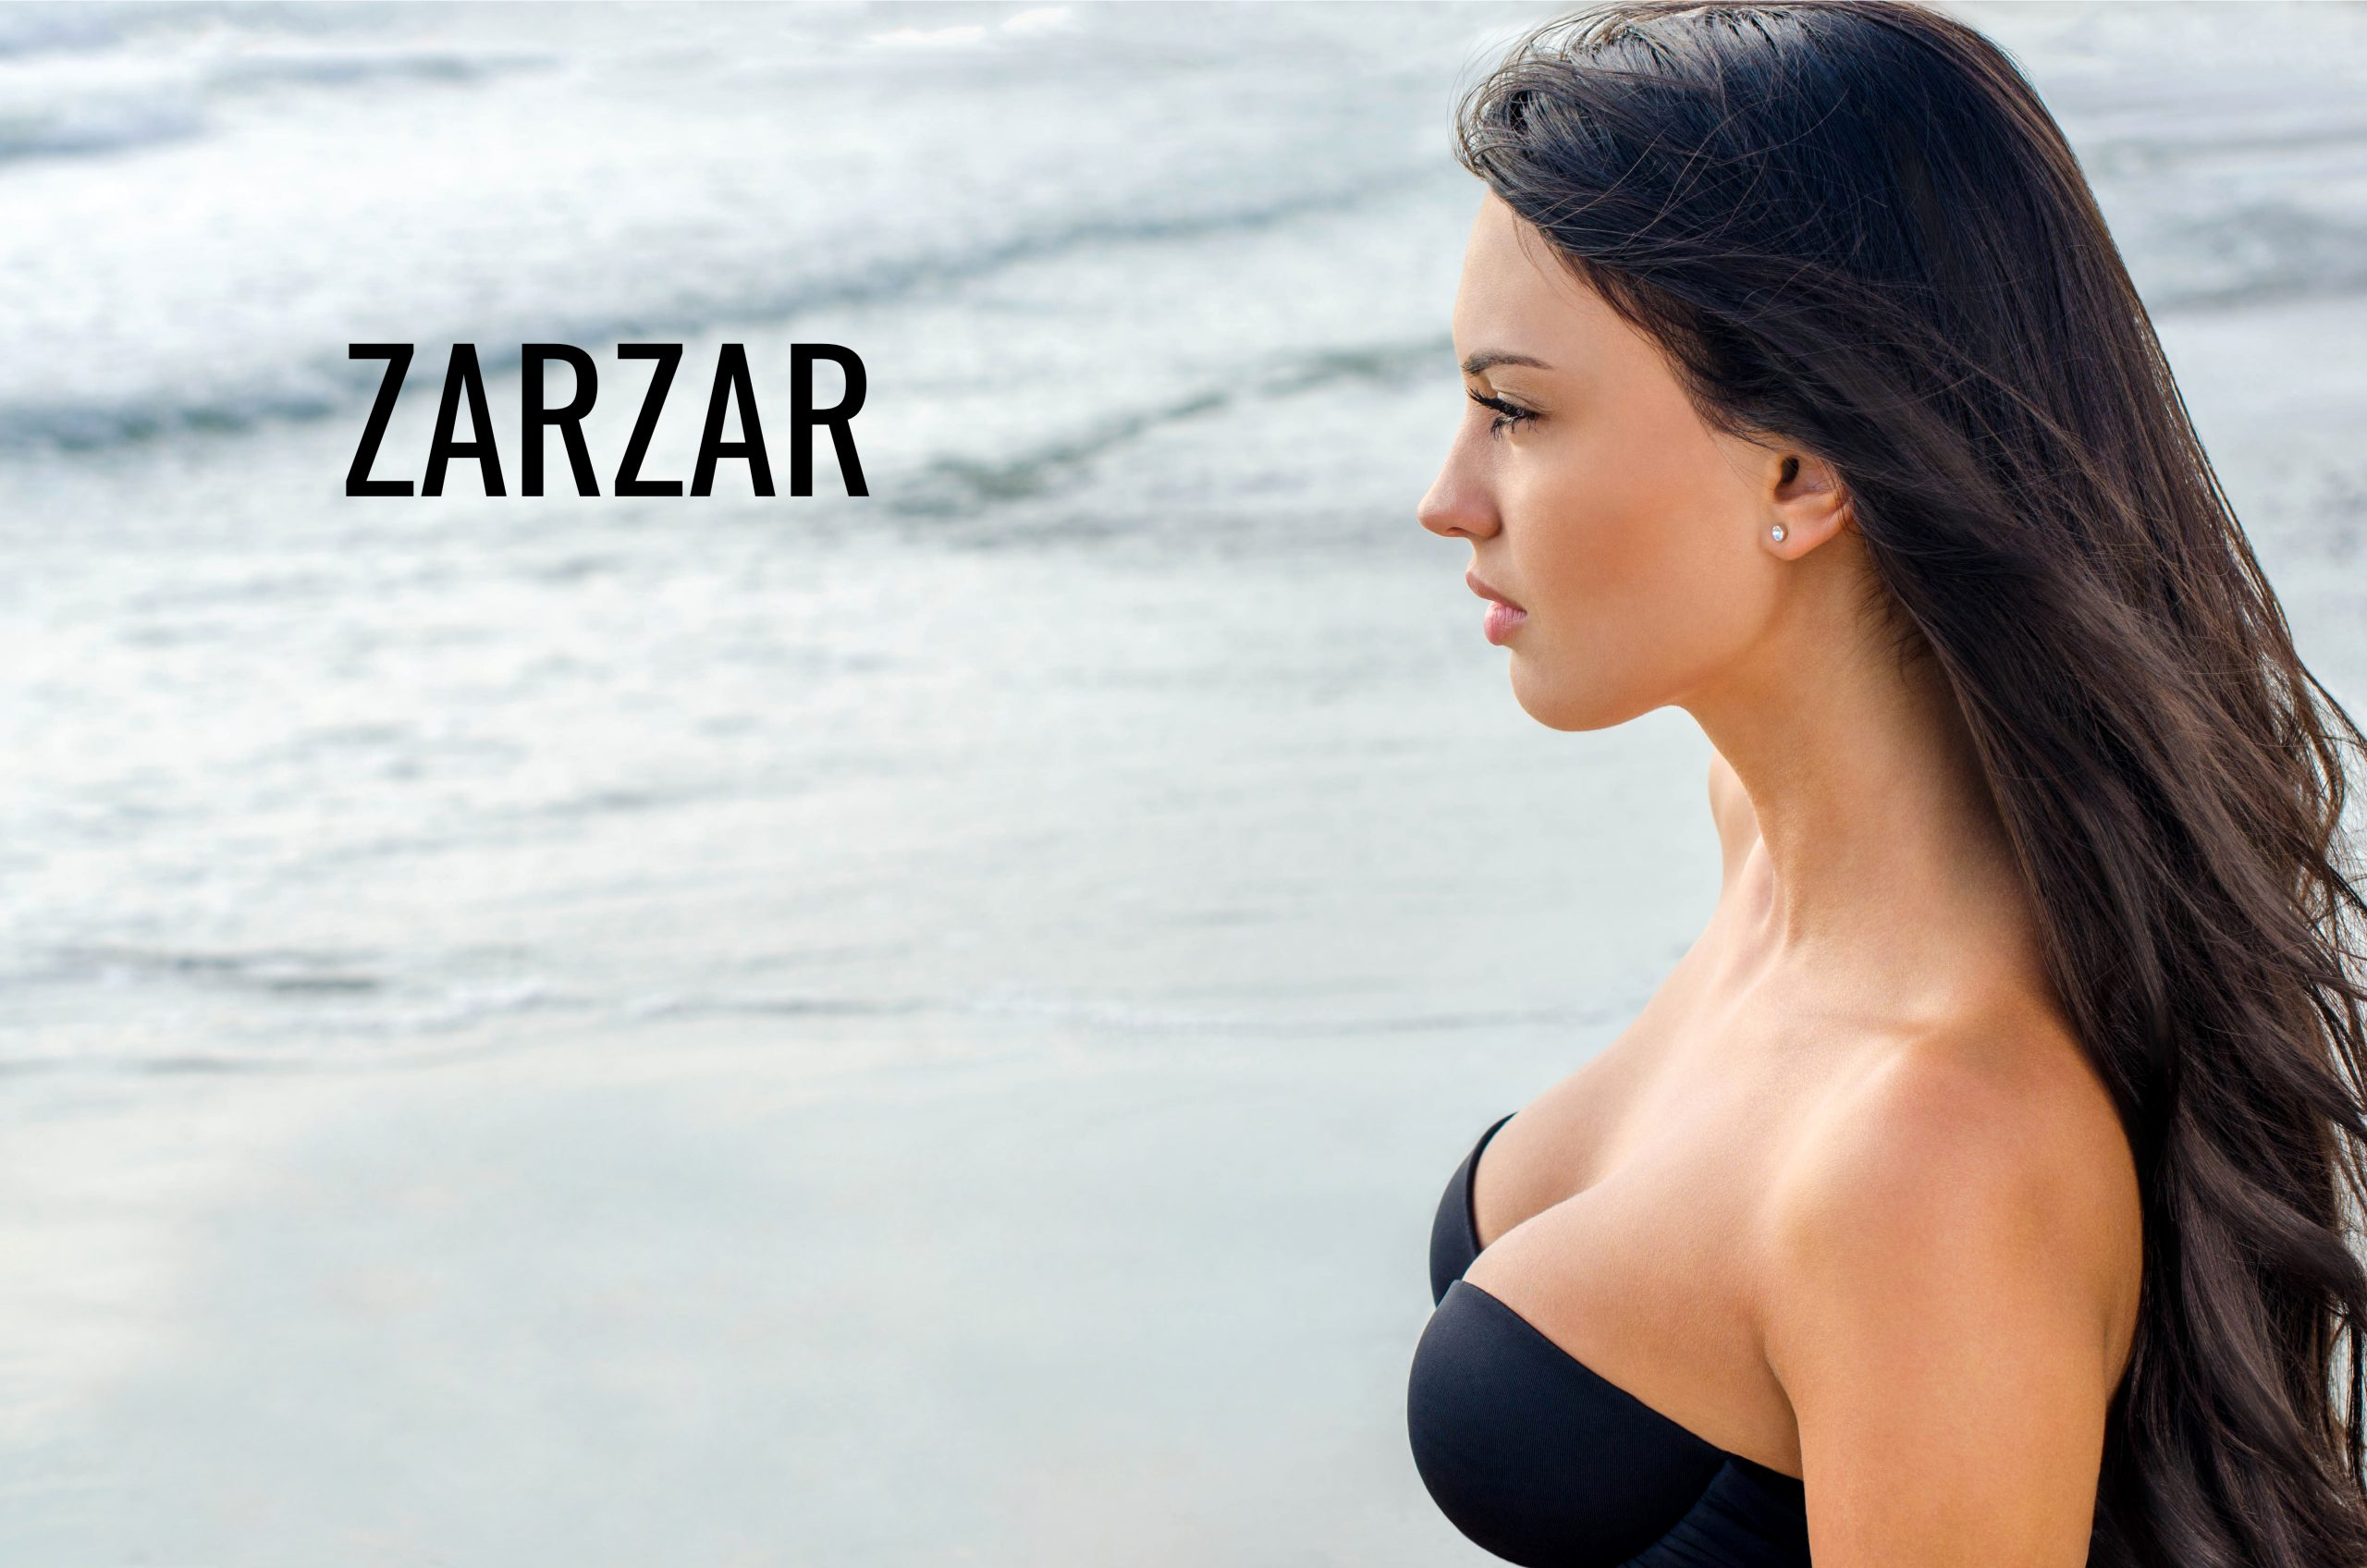 ZARZAR FASHION Swimwear For Women (Bikinis For Women). Sexy Brunette Girl Looking At The Beautiful Ocean (The Beautiful Sea).